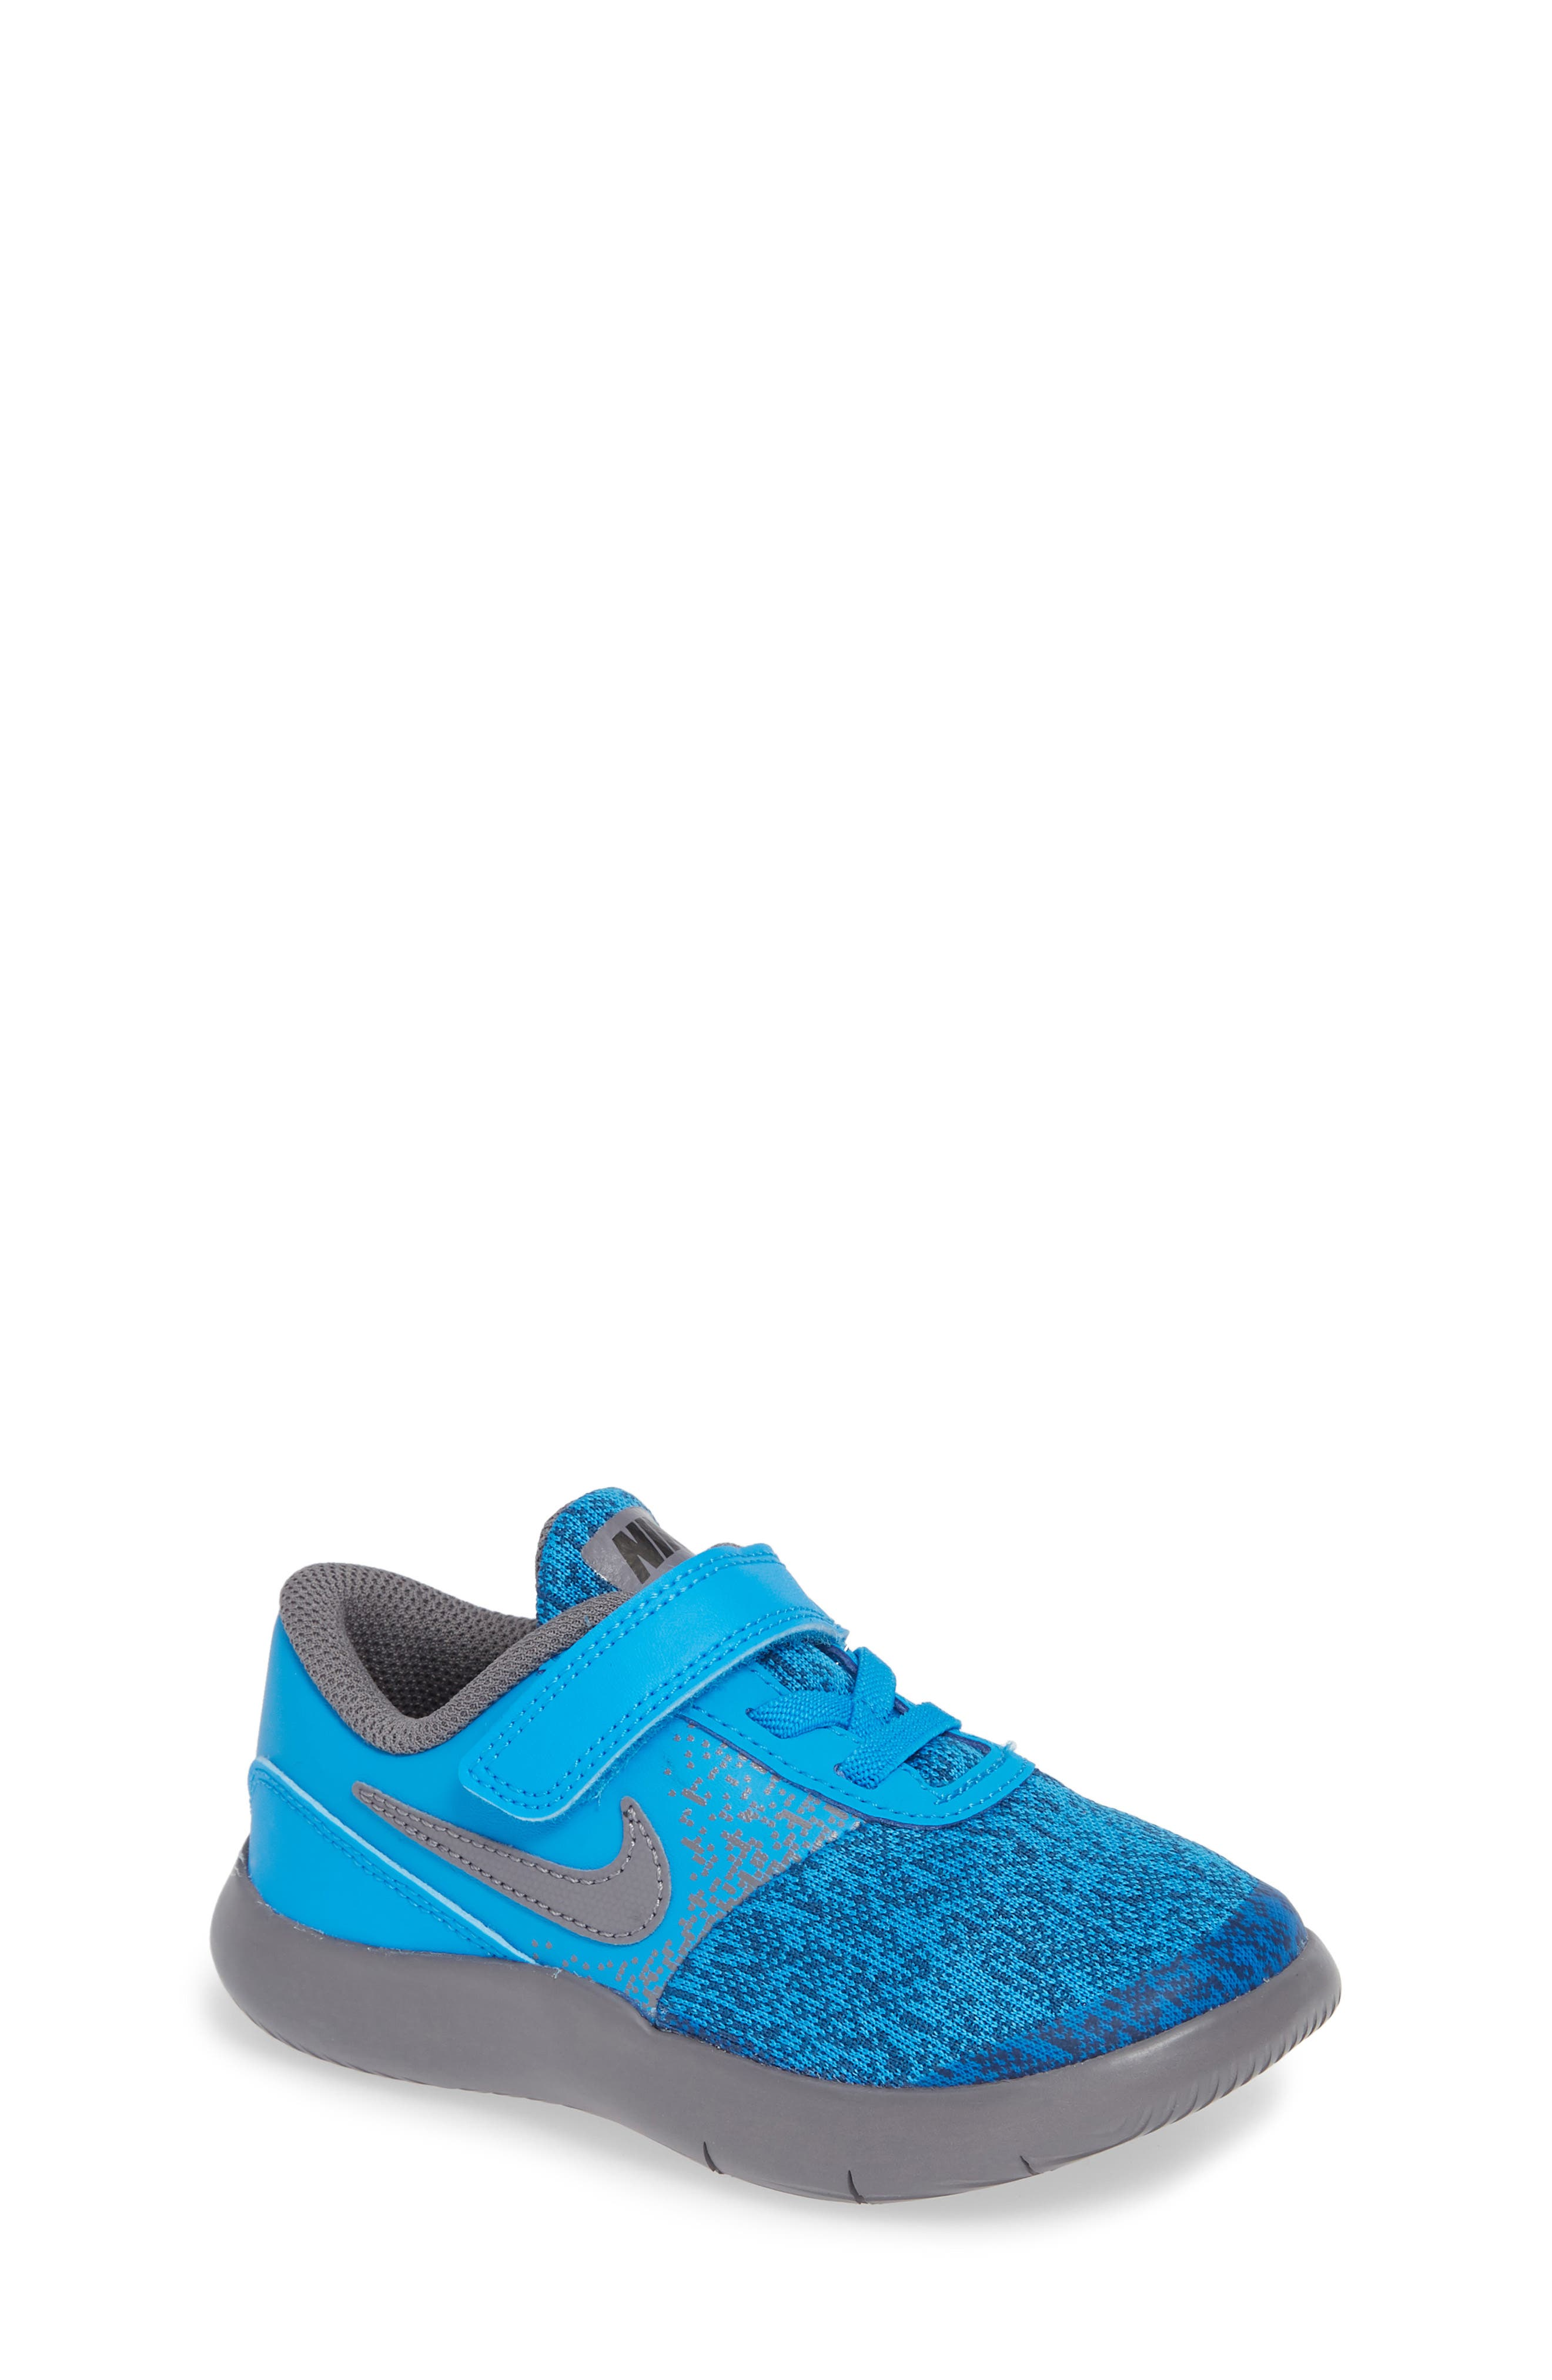 Flex Contact Running Shoe,                             Main thumbnail 1, color,                             BLUE HERO/ GUNSMOKE/ GREEN